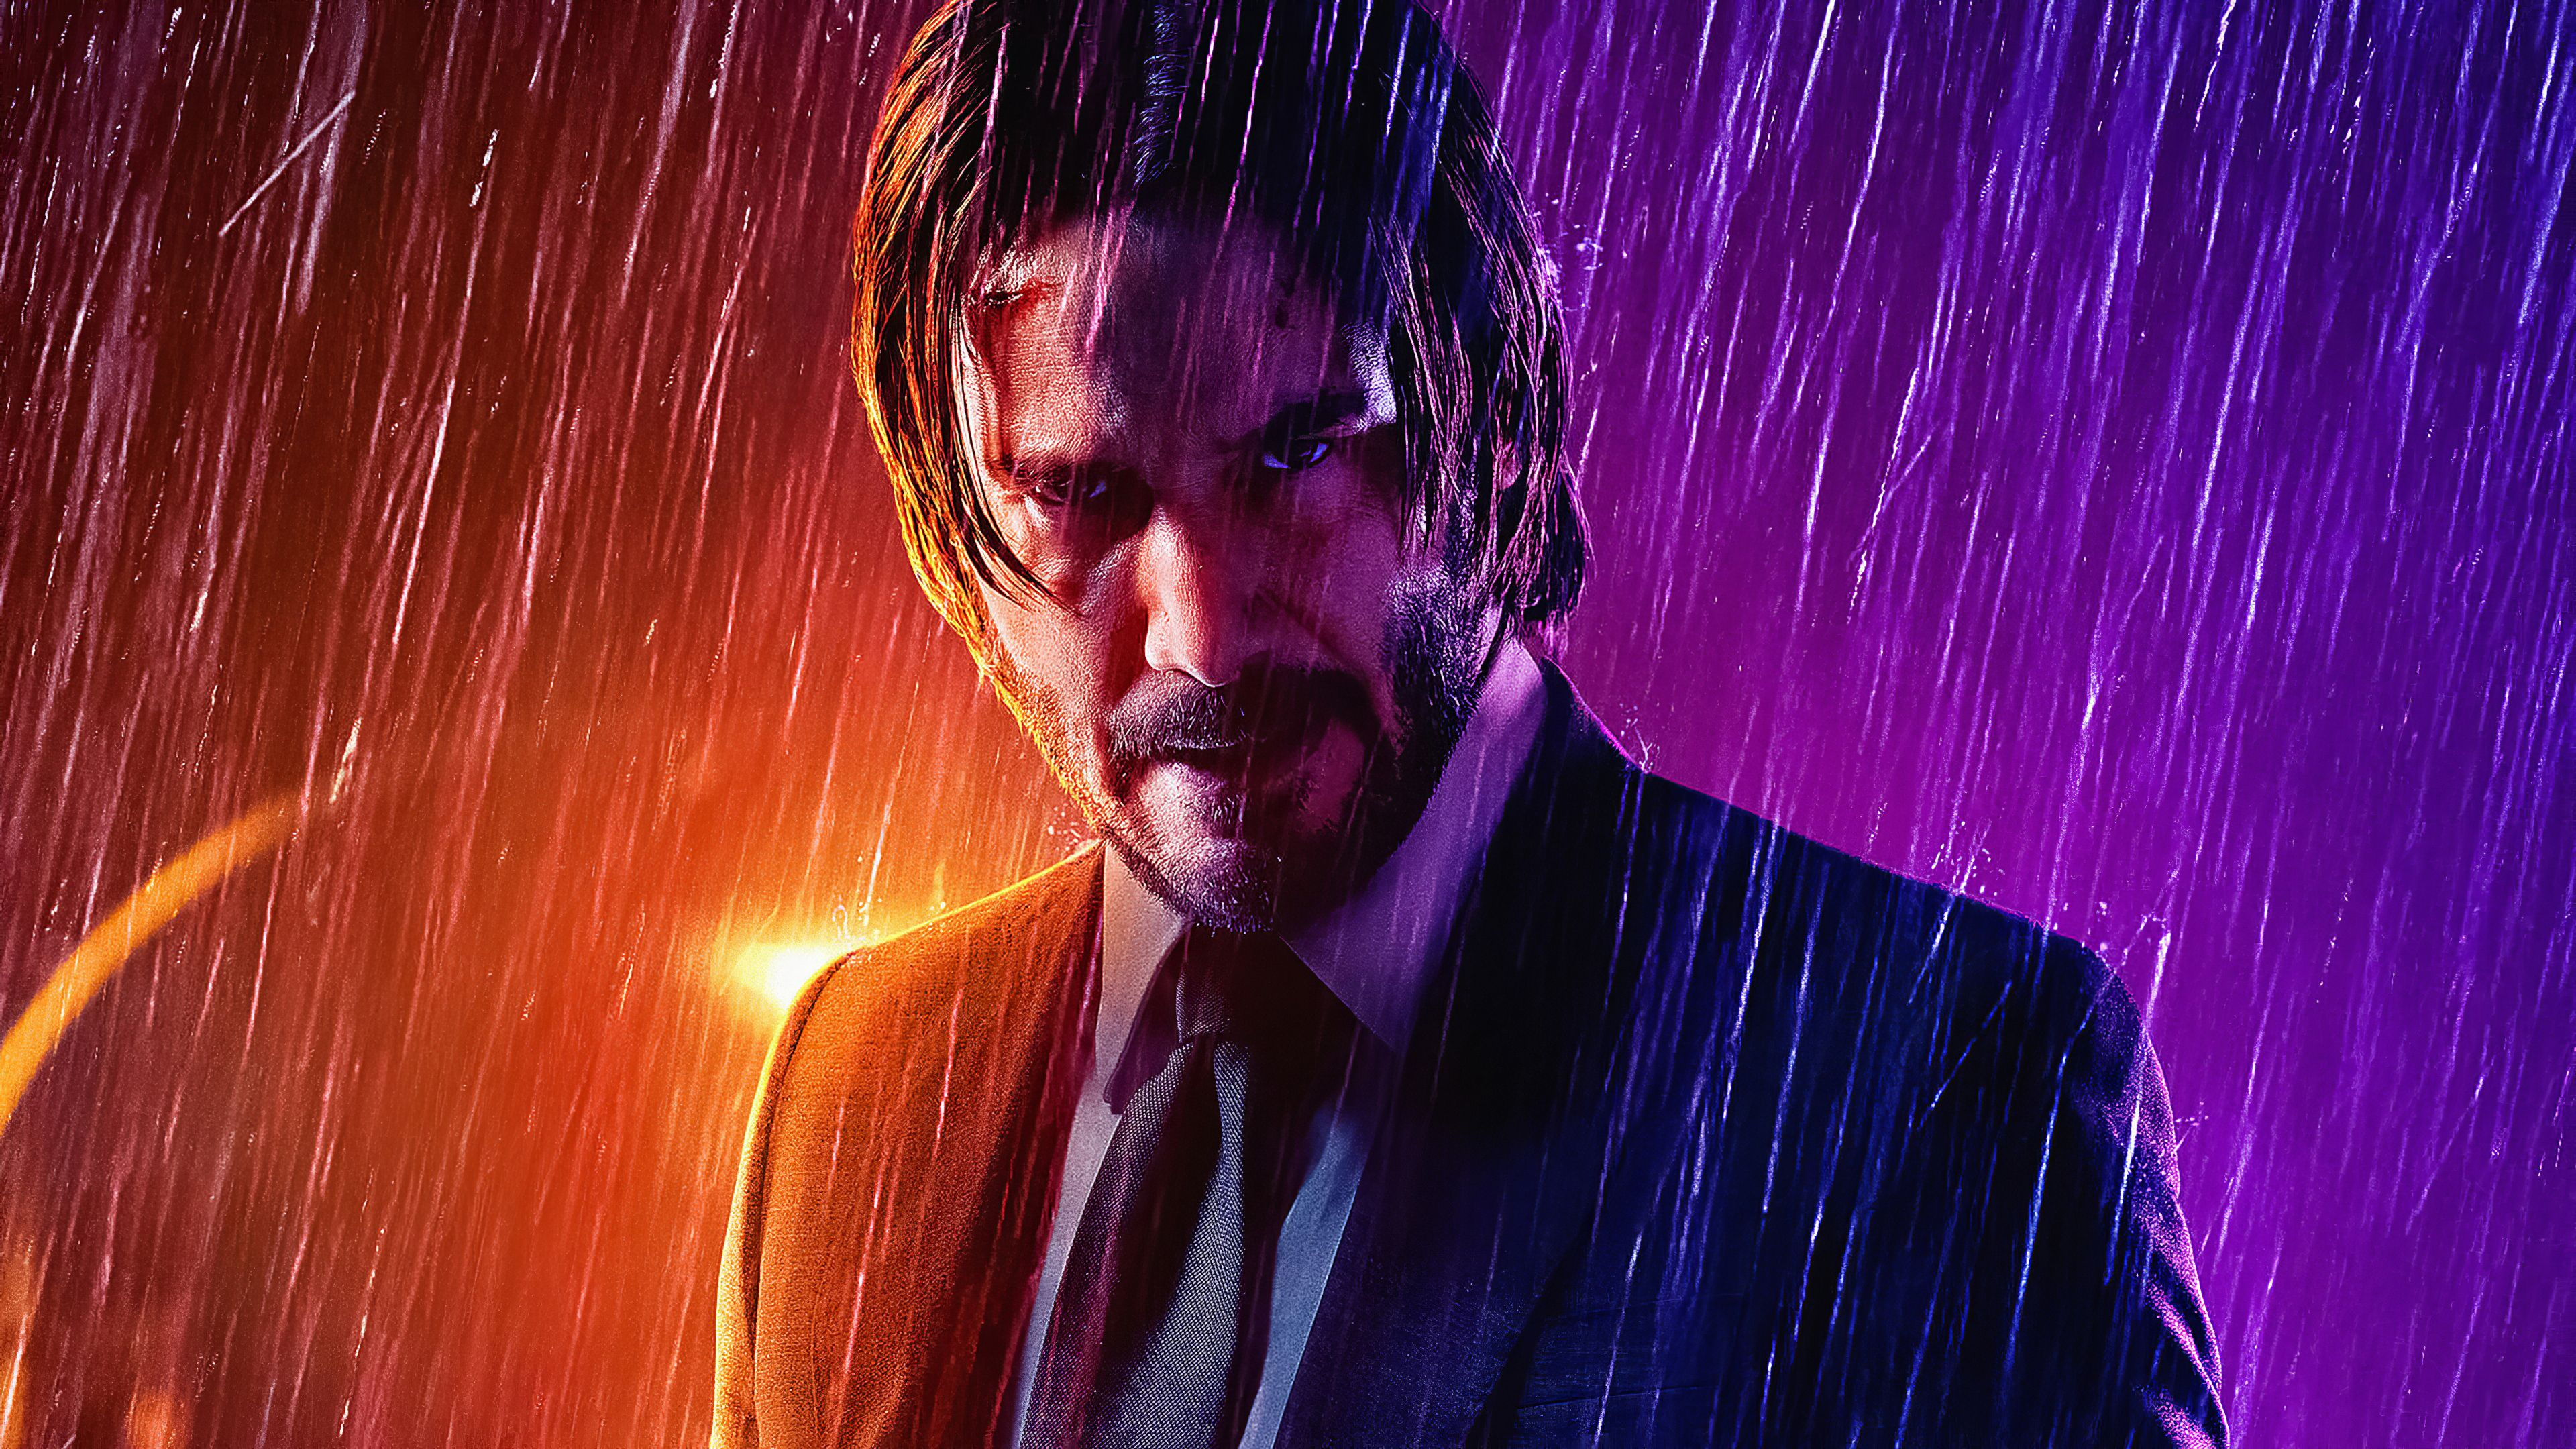 John Wick In Rain John Wick In Rain Wallpaper 4k John Wick In Rain 4k Wallpaper Keanu Reeves Movies John Wick